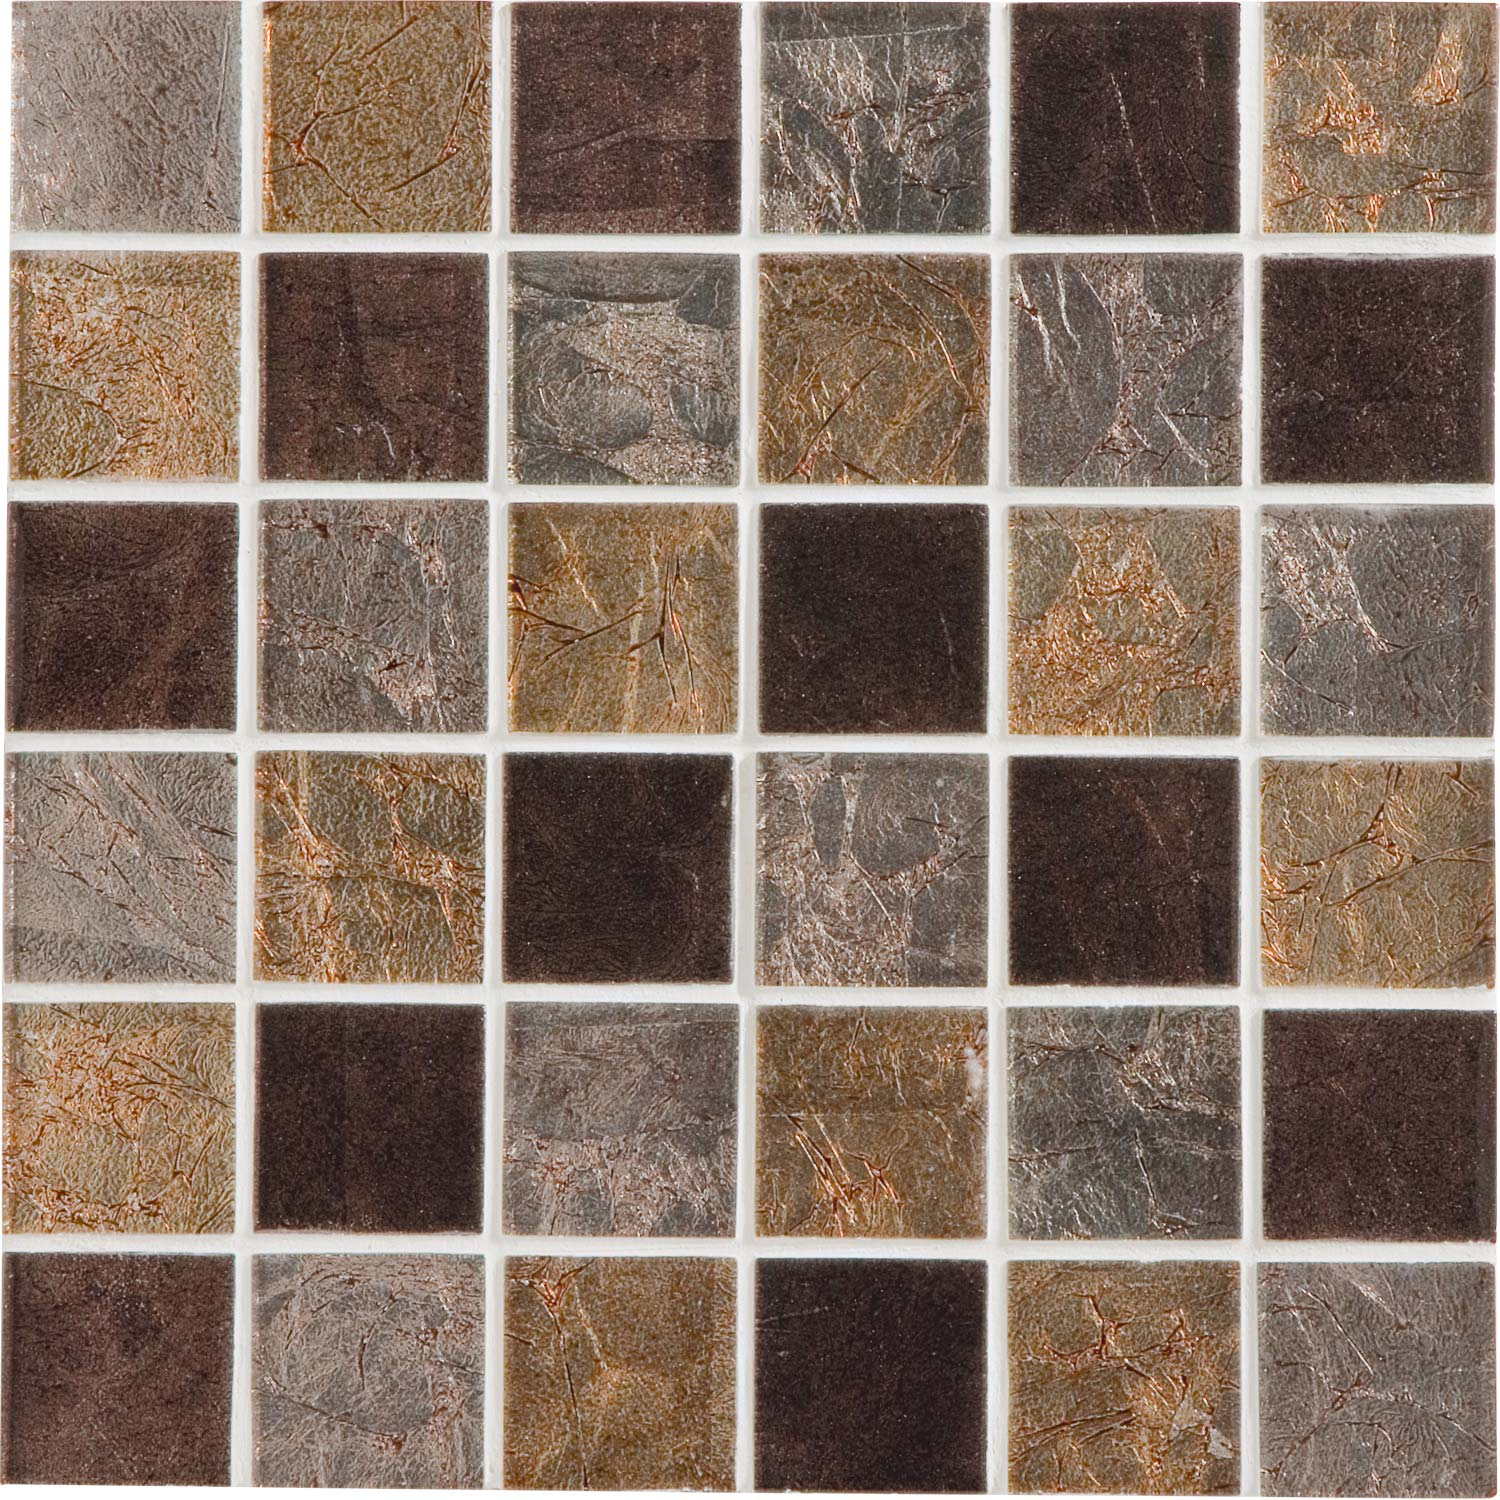 Mosa que glass select mix artens marron 5x5 cm leroy merlin - Leroy merlin mosaique ...